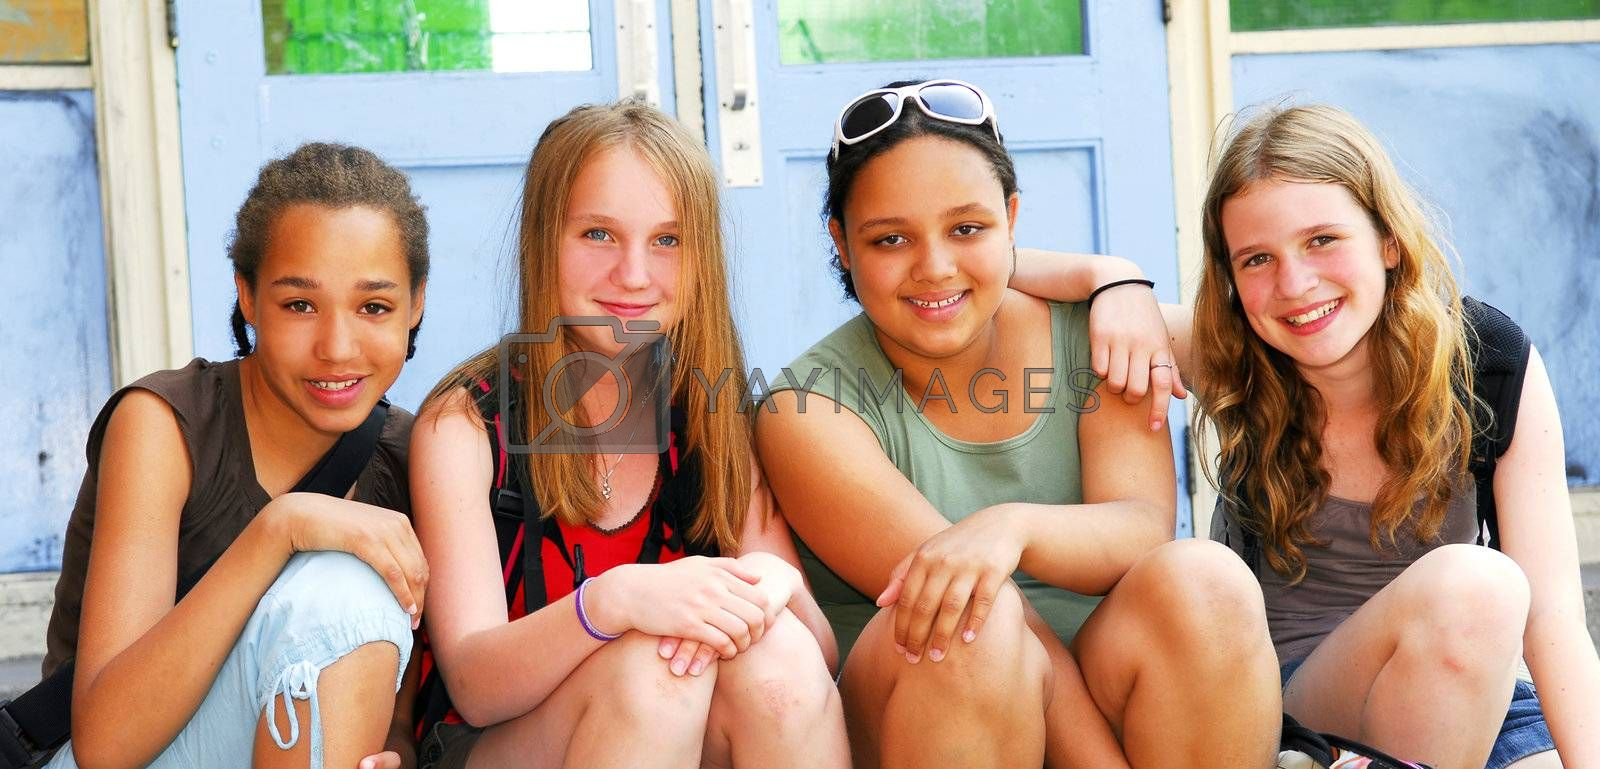 Group of young girls near school building